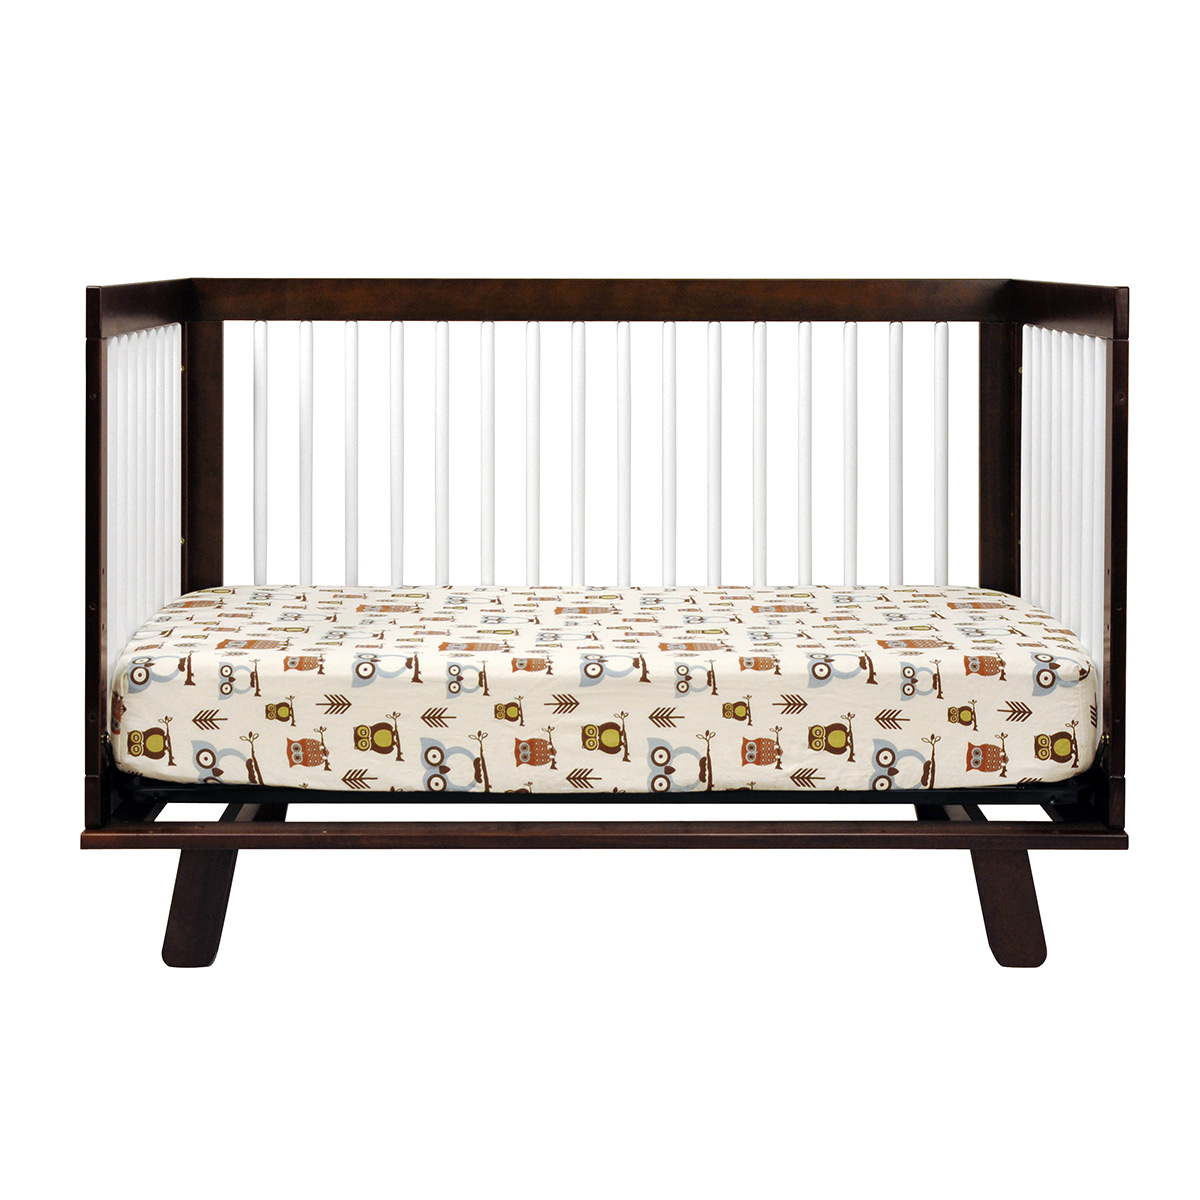 babyletto hudson 3 in 1 convertible crib in two tone espresso and white free shipping babyletto furniture